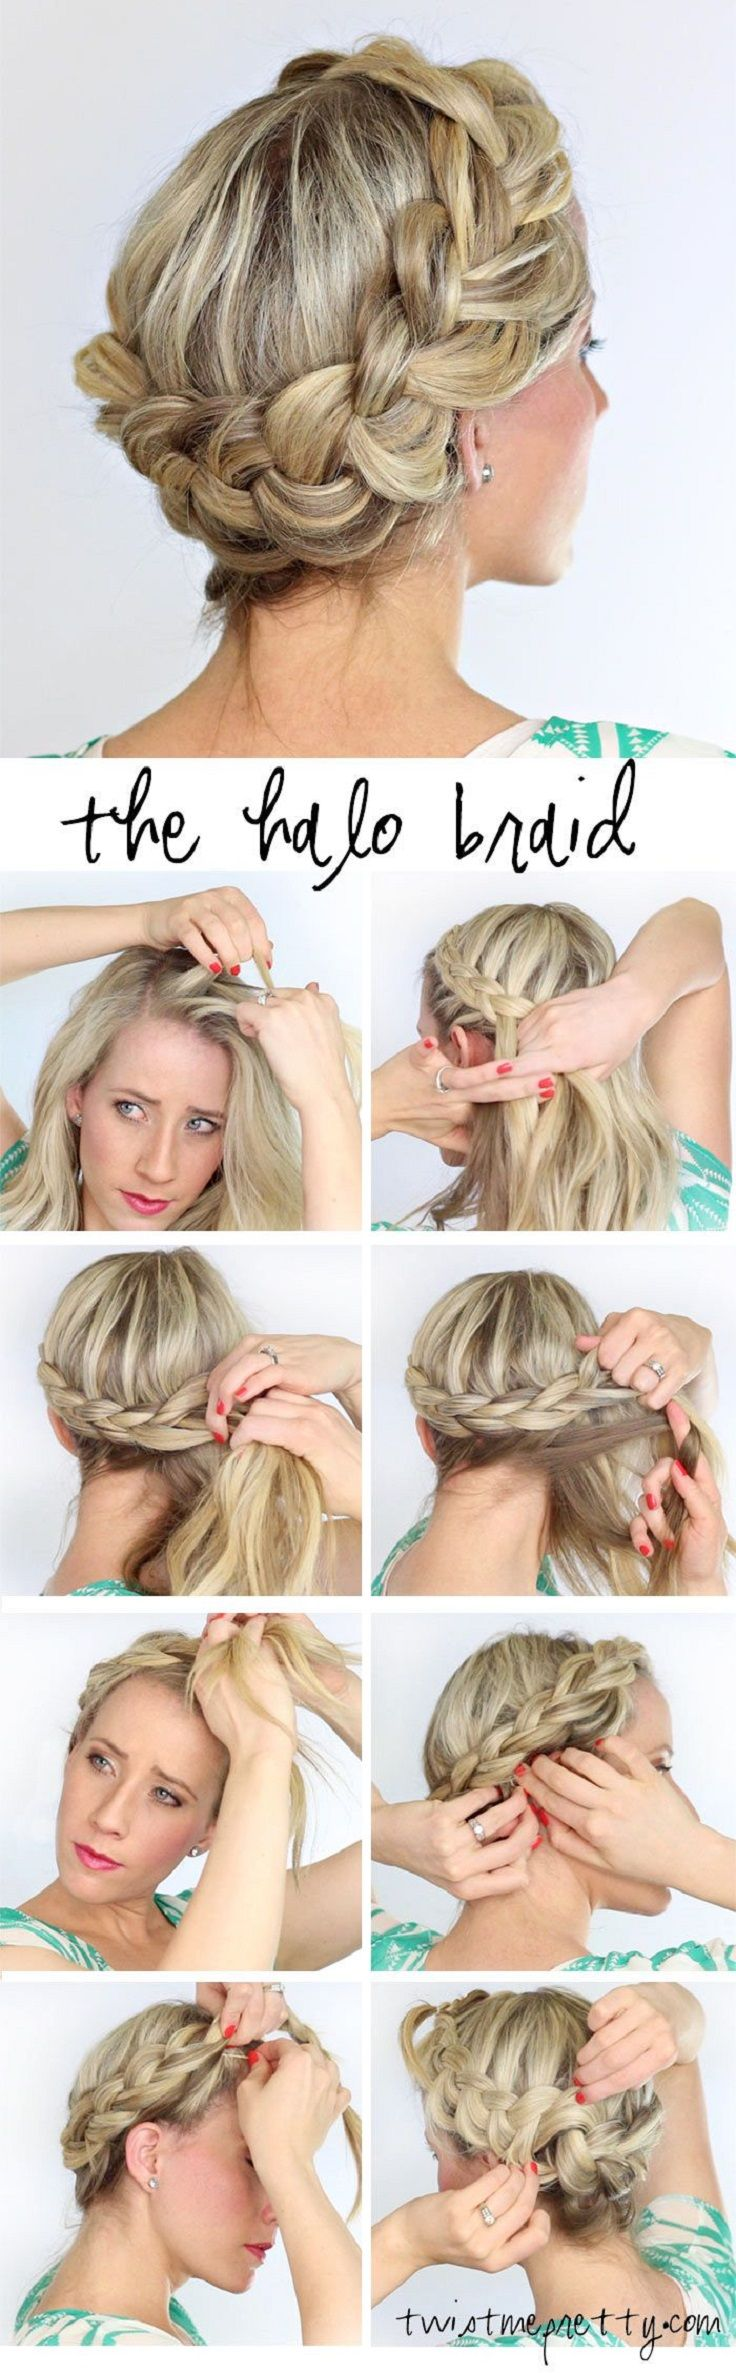 10 Messy Braided Long Hairstyle Ideas for Weddings Vacations images